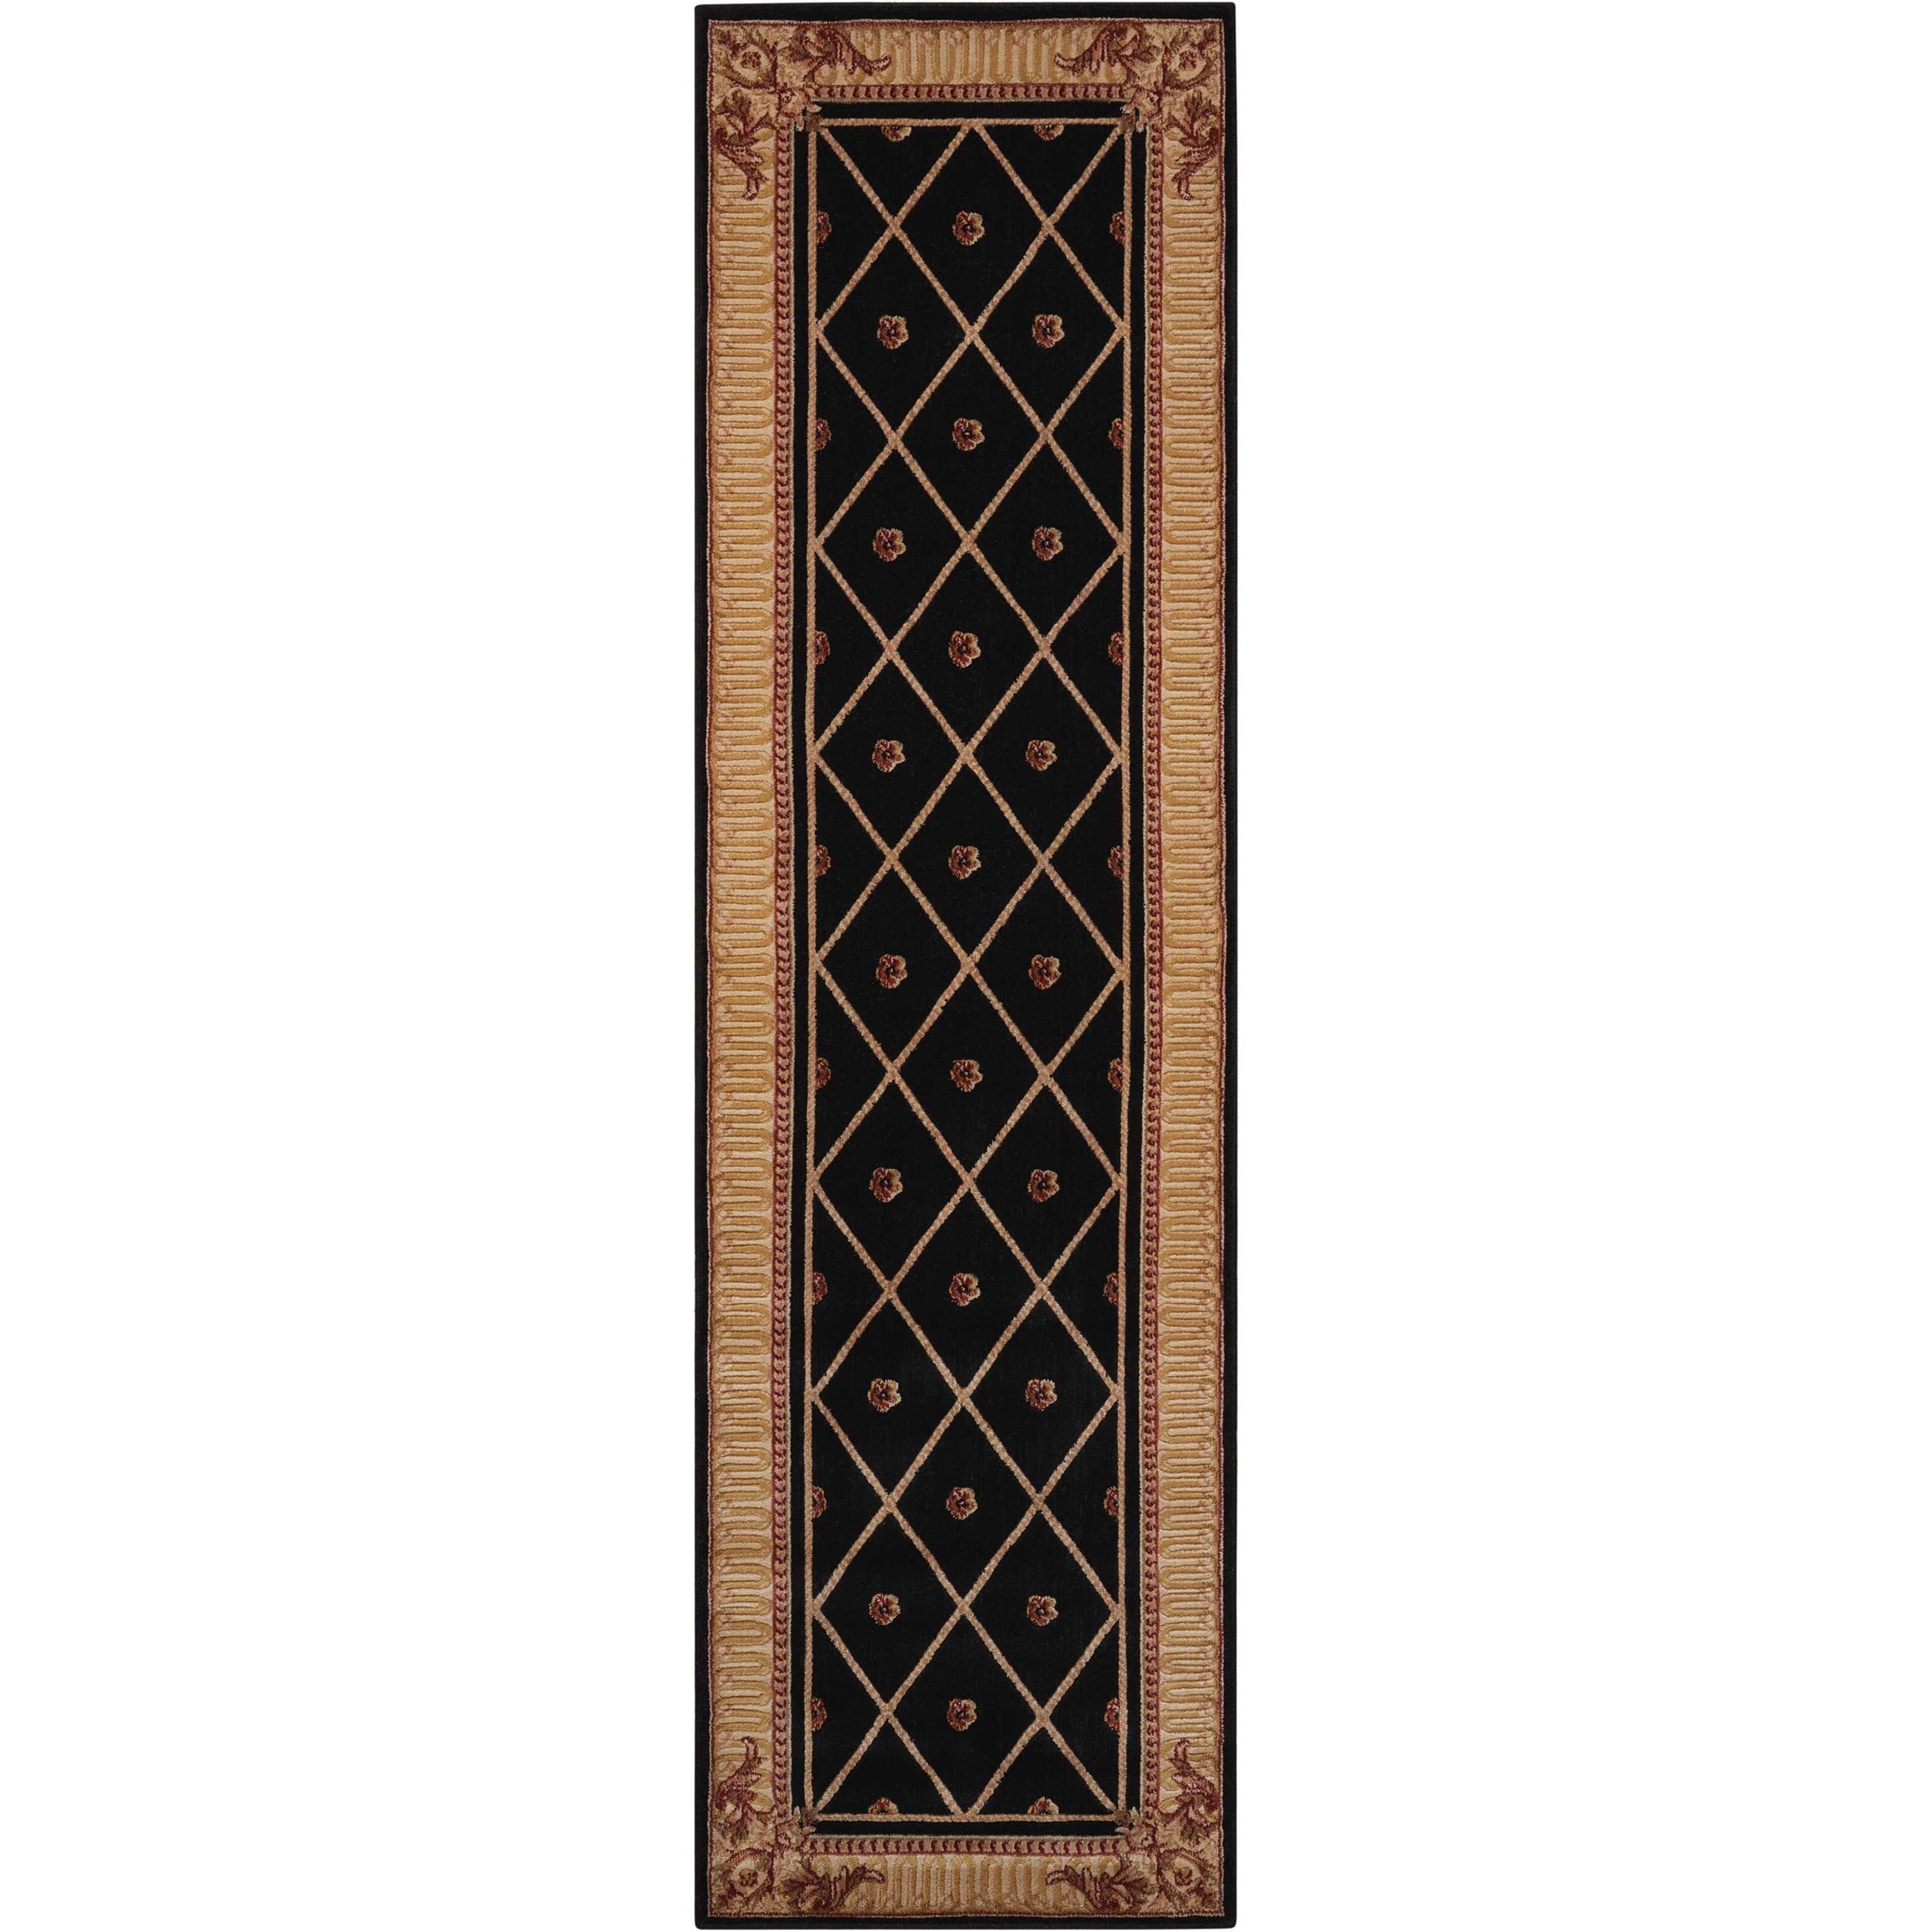 """Ashton House 2' x 5'9"""" Black Runner Rug by Nourison at Home Collections Furniture"""